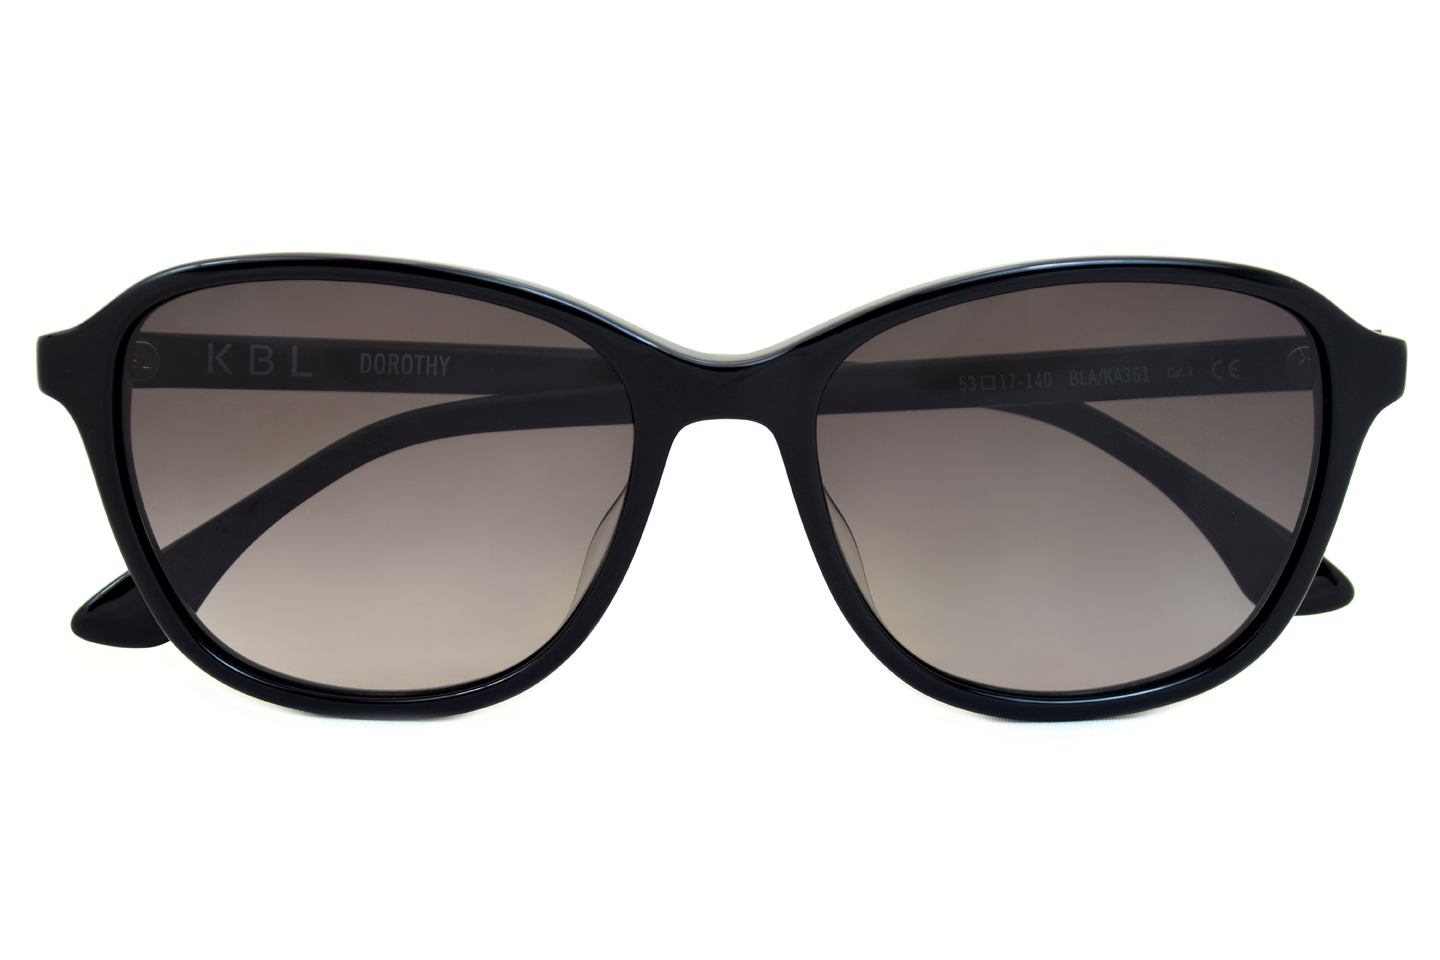 Black classic sunglasses from KBL eyewear model Dorothy 1.395 d.kr.